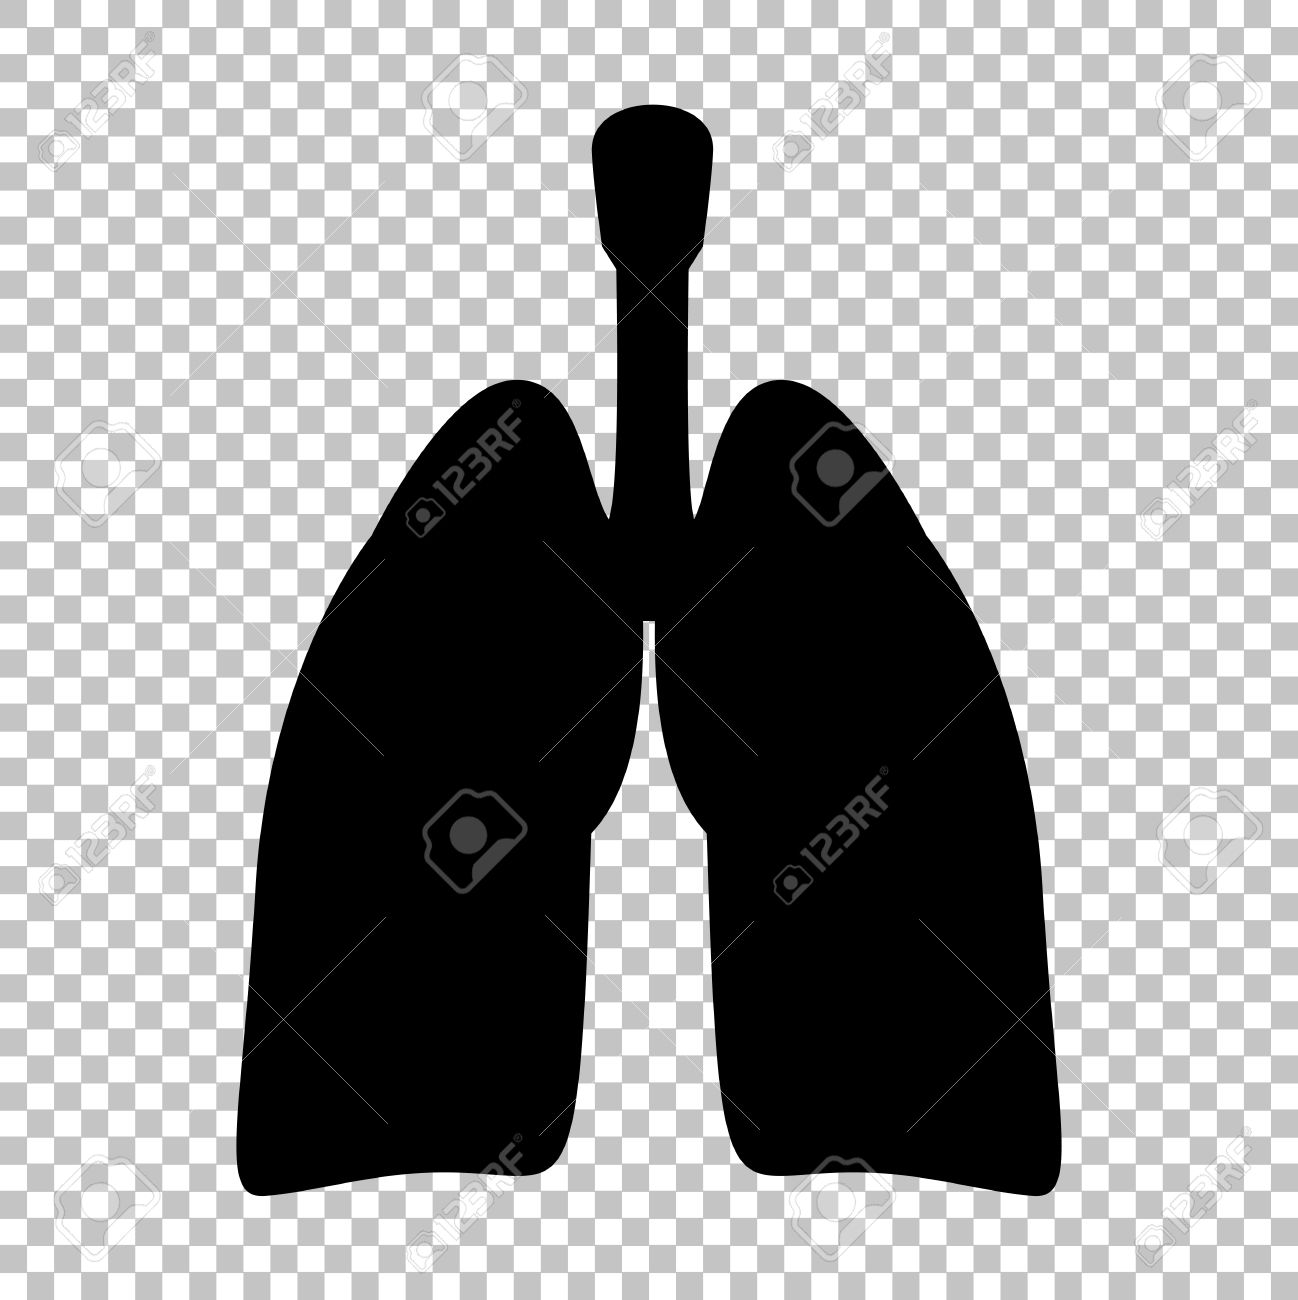 Human Organs Lungs Sign Flat Style Icon On Transparent Background Royalty Free Cliparts Vectors And Stock Illustration Image 52182247 Vector collage of human icon done of round pixels. 123rf com